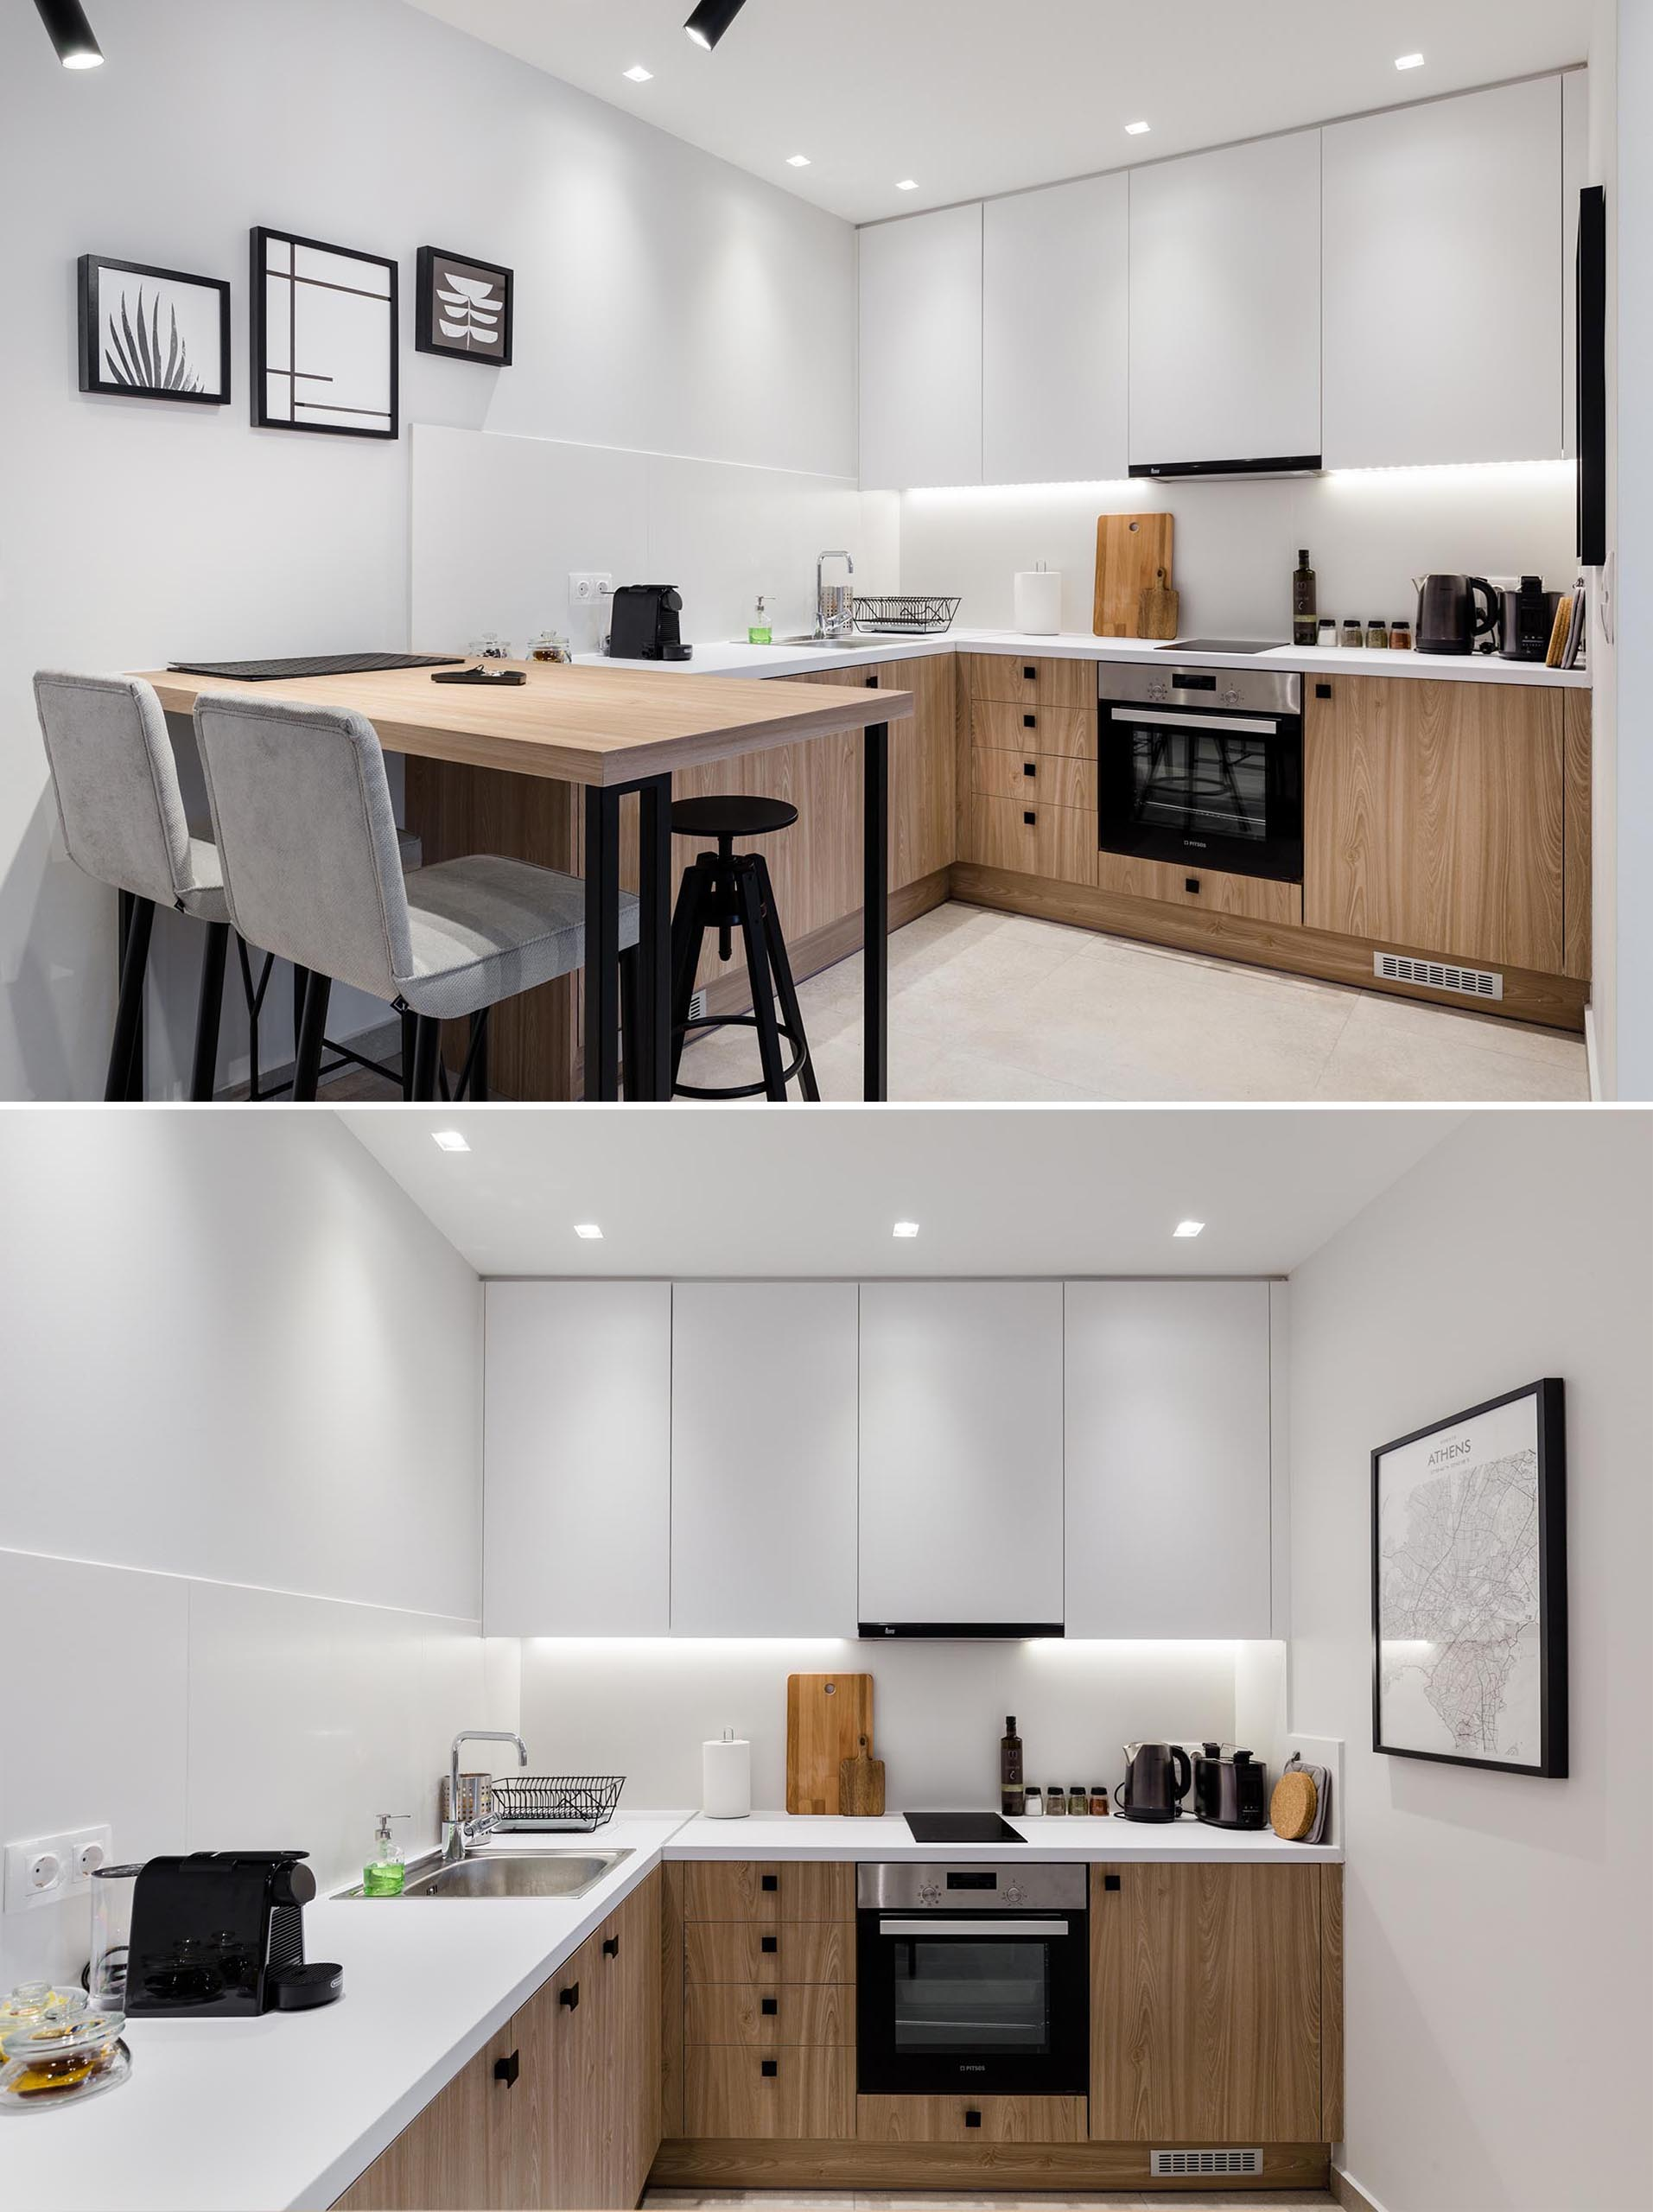 This small apartment has an open interior with a kitchen that features minimalist white upper cabinets and wood lower cabinets, as well as a bar height table.